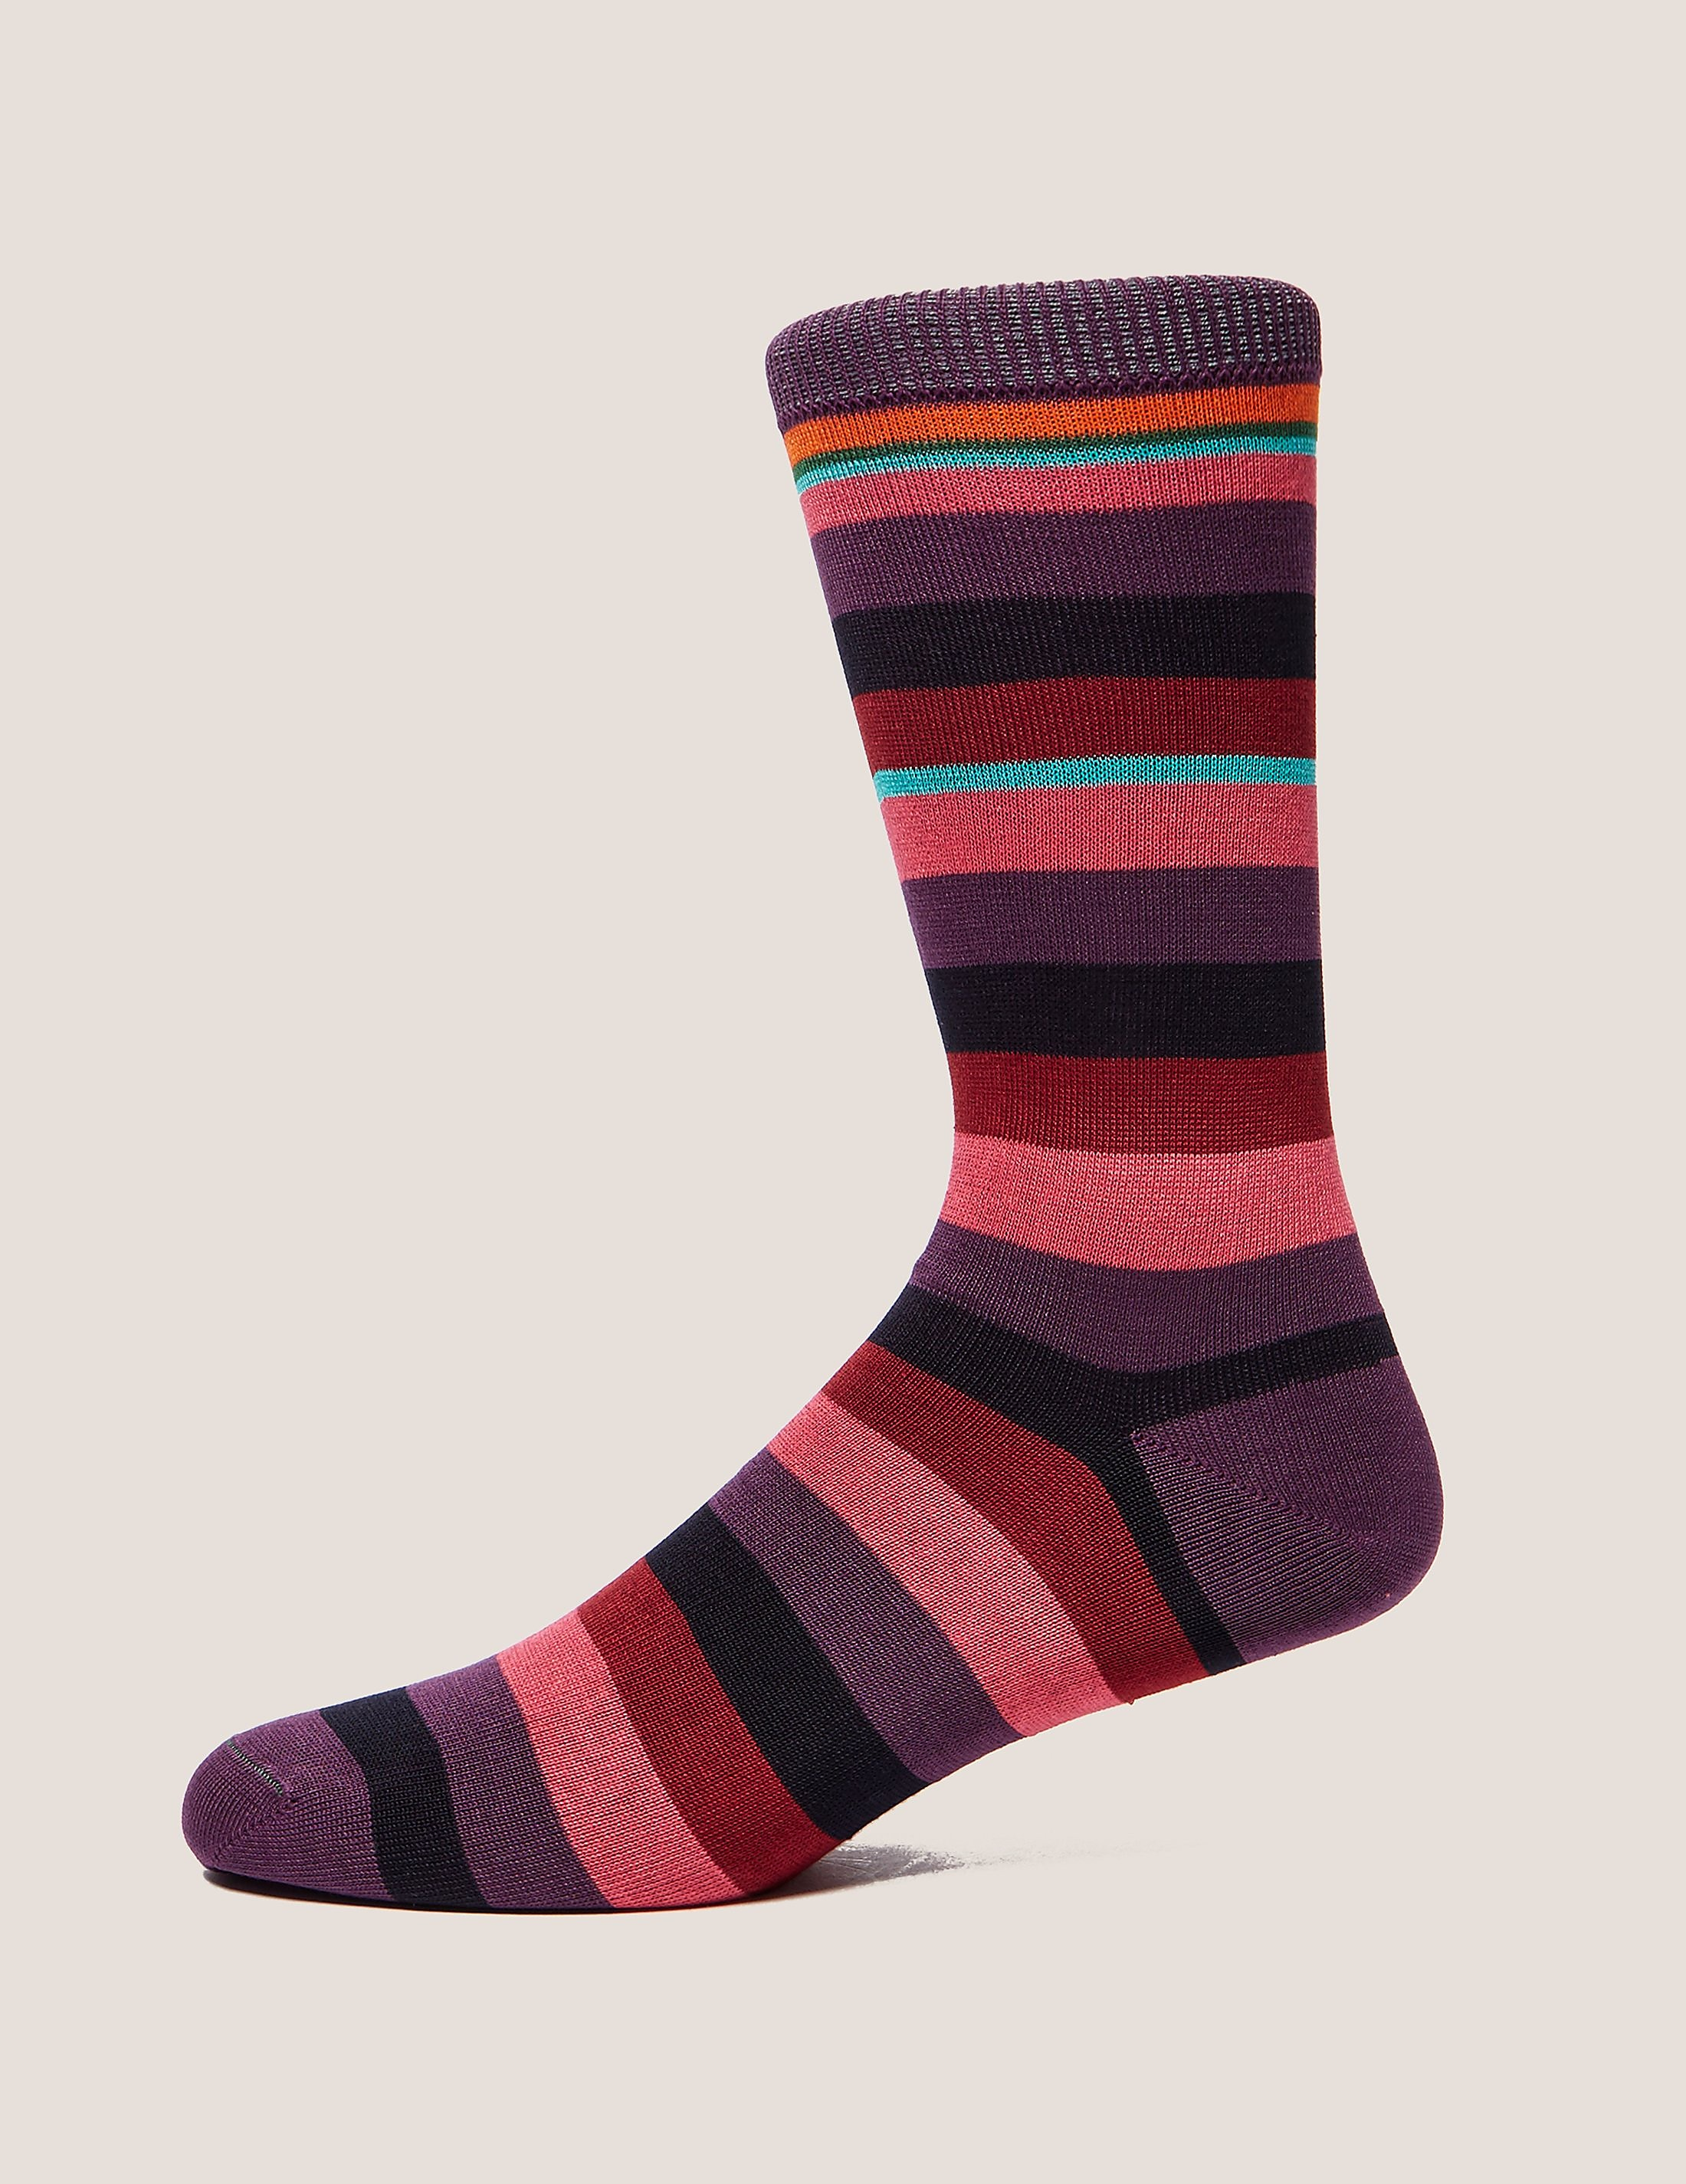 Paul Smith Valentine Stripe Socks